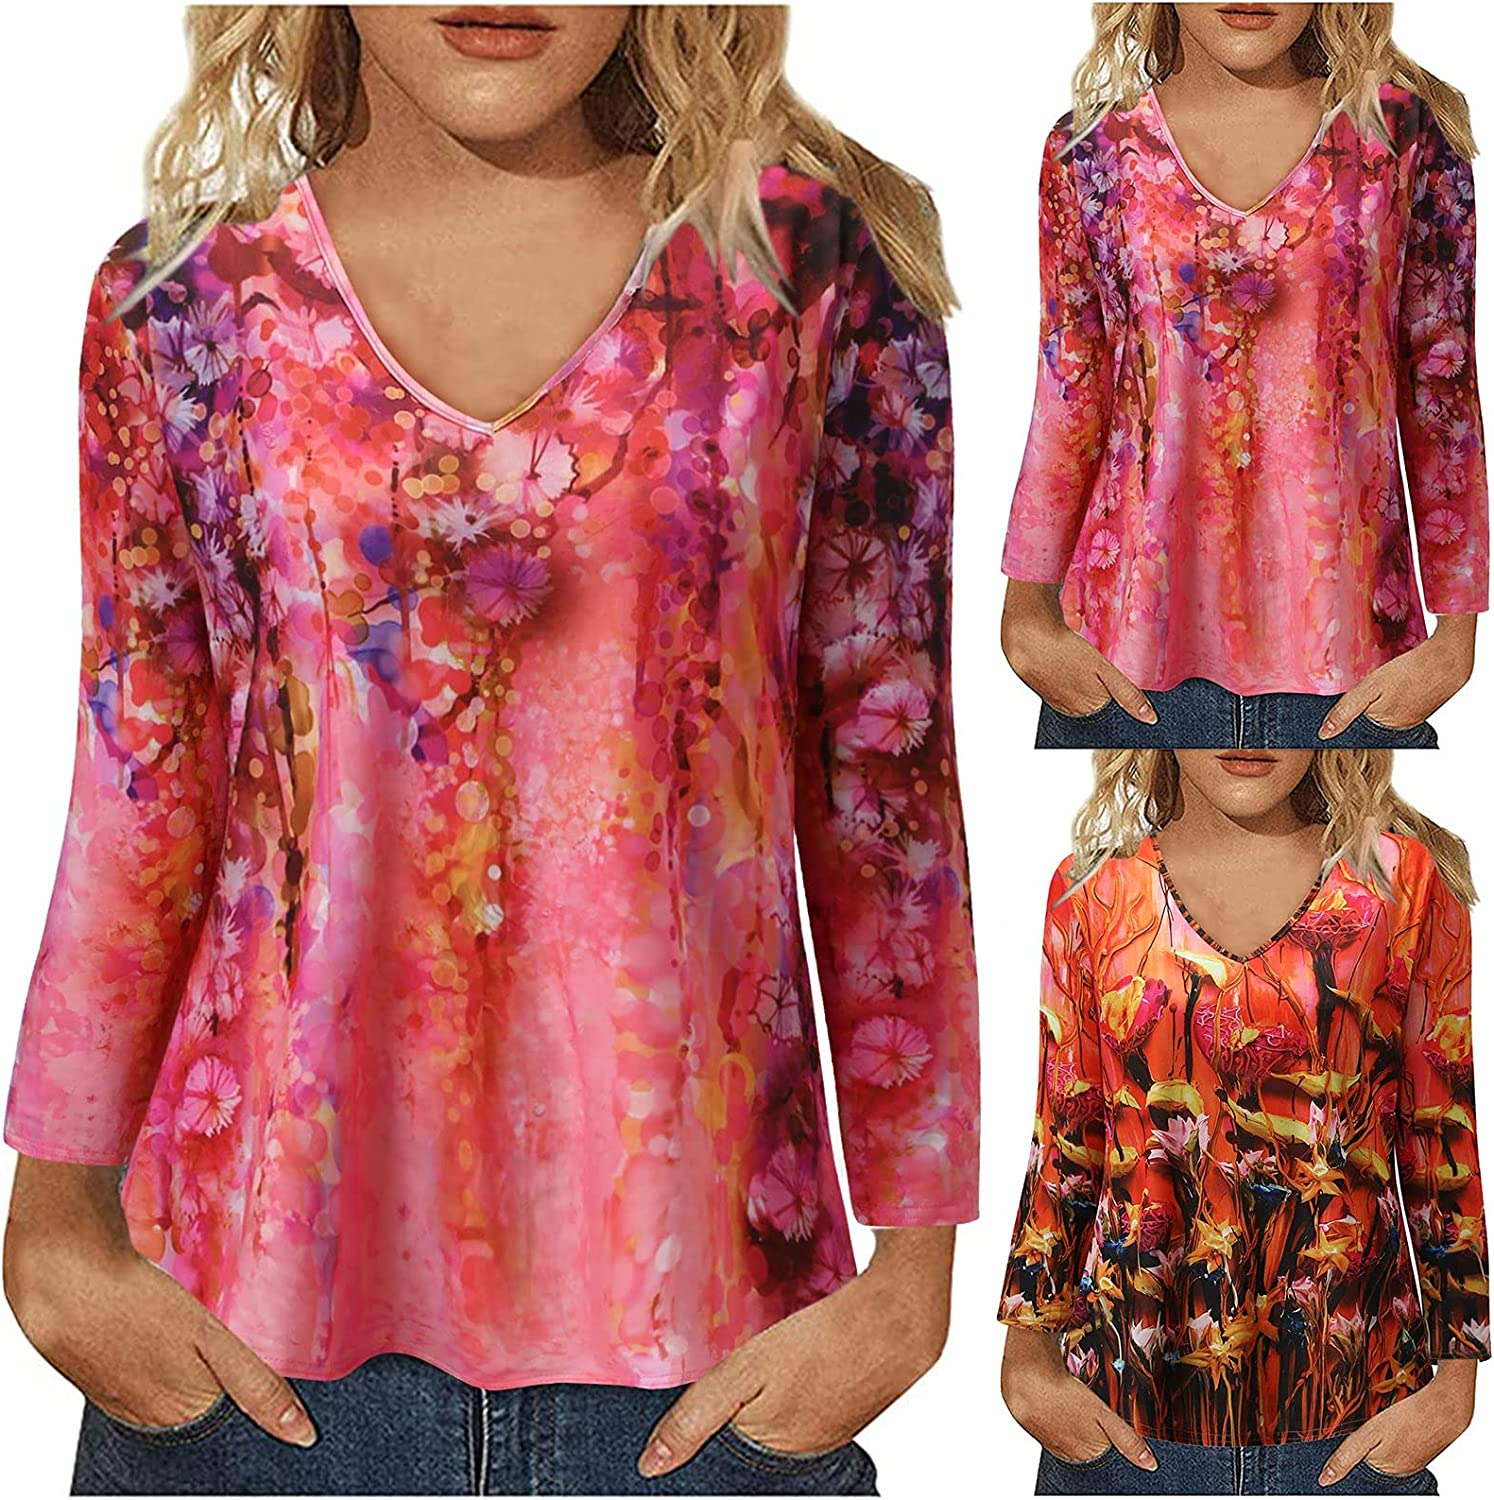 Womens Vintage Tops for Women Printed Blouse Flower Sleeves Ranking Mesa Mall TOP2 Long